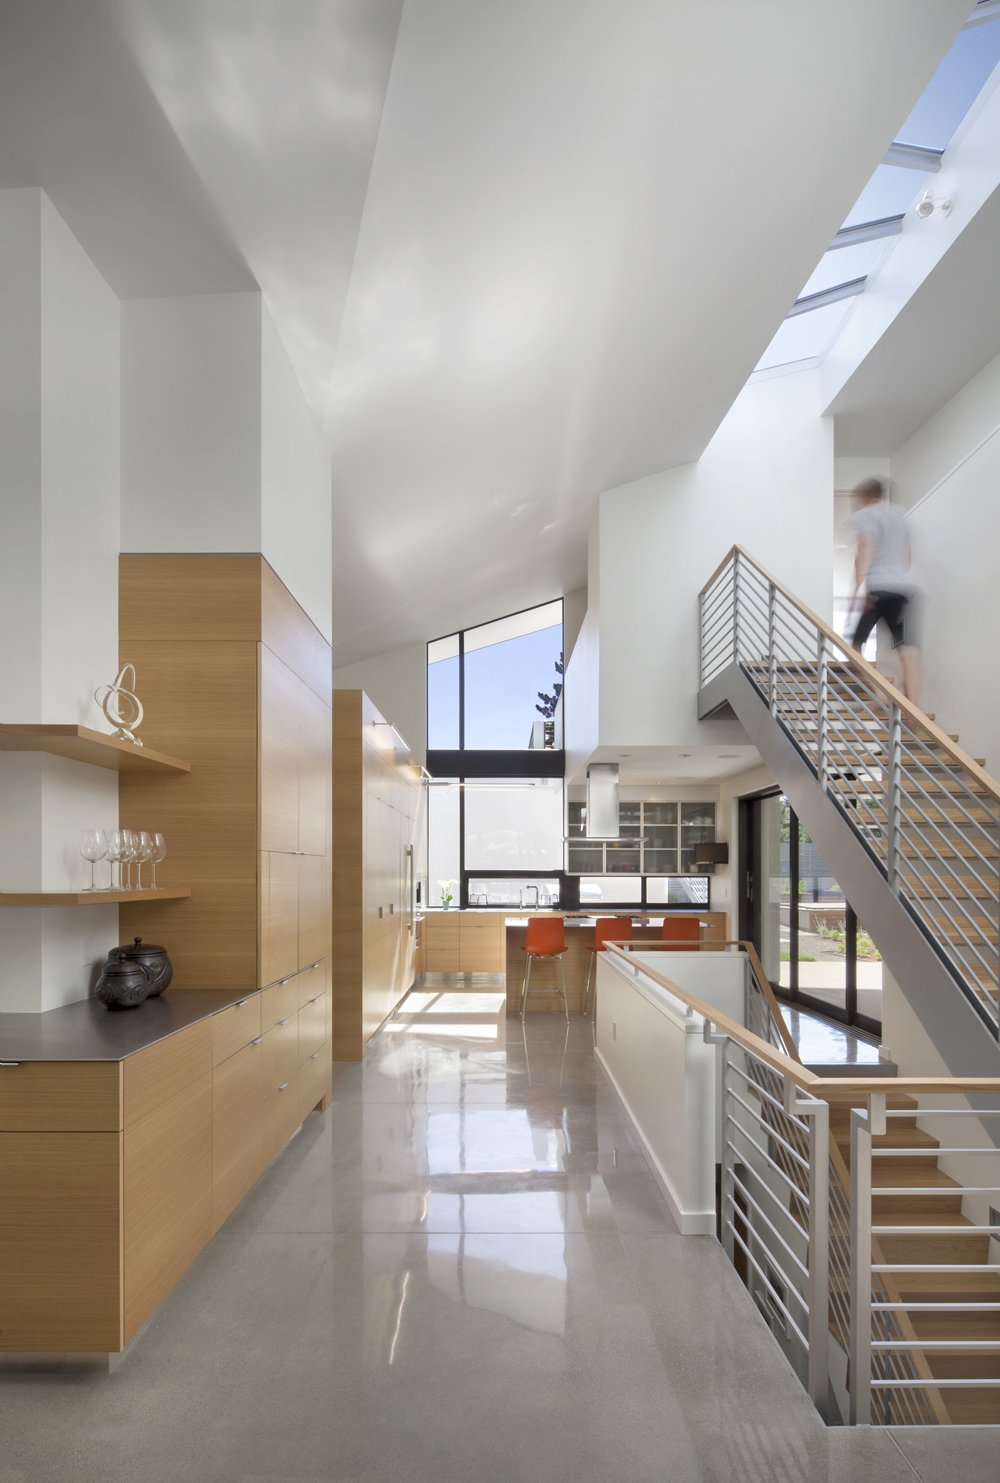 Staircase, Metal Railing, Wood Tread, and Wood Railing Minimalist design with views to every corner of the house. Vitra Hal stools in the kitchen from Design Within Reach  6th Street by Arch11